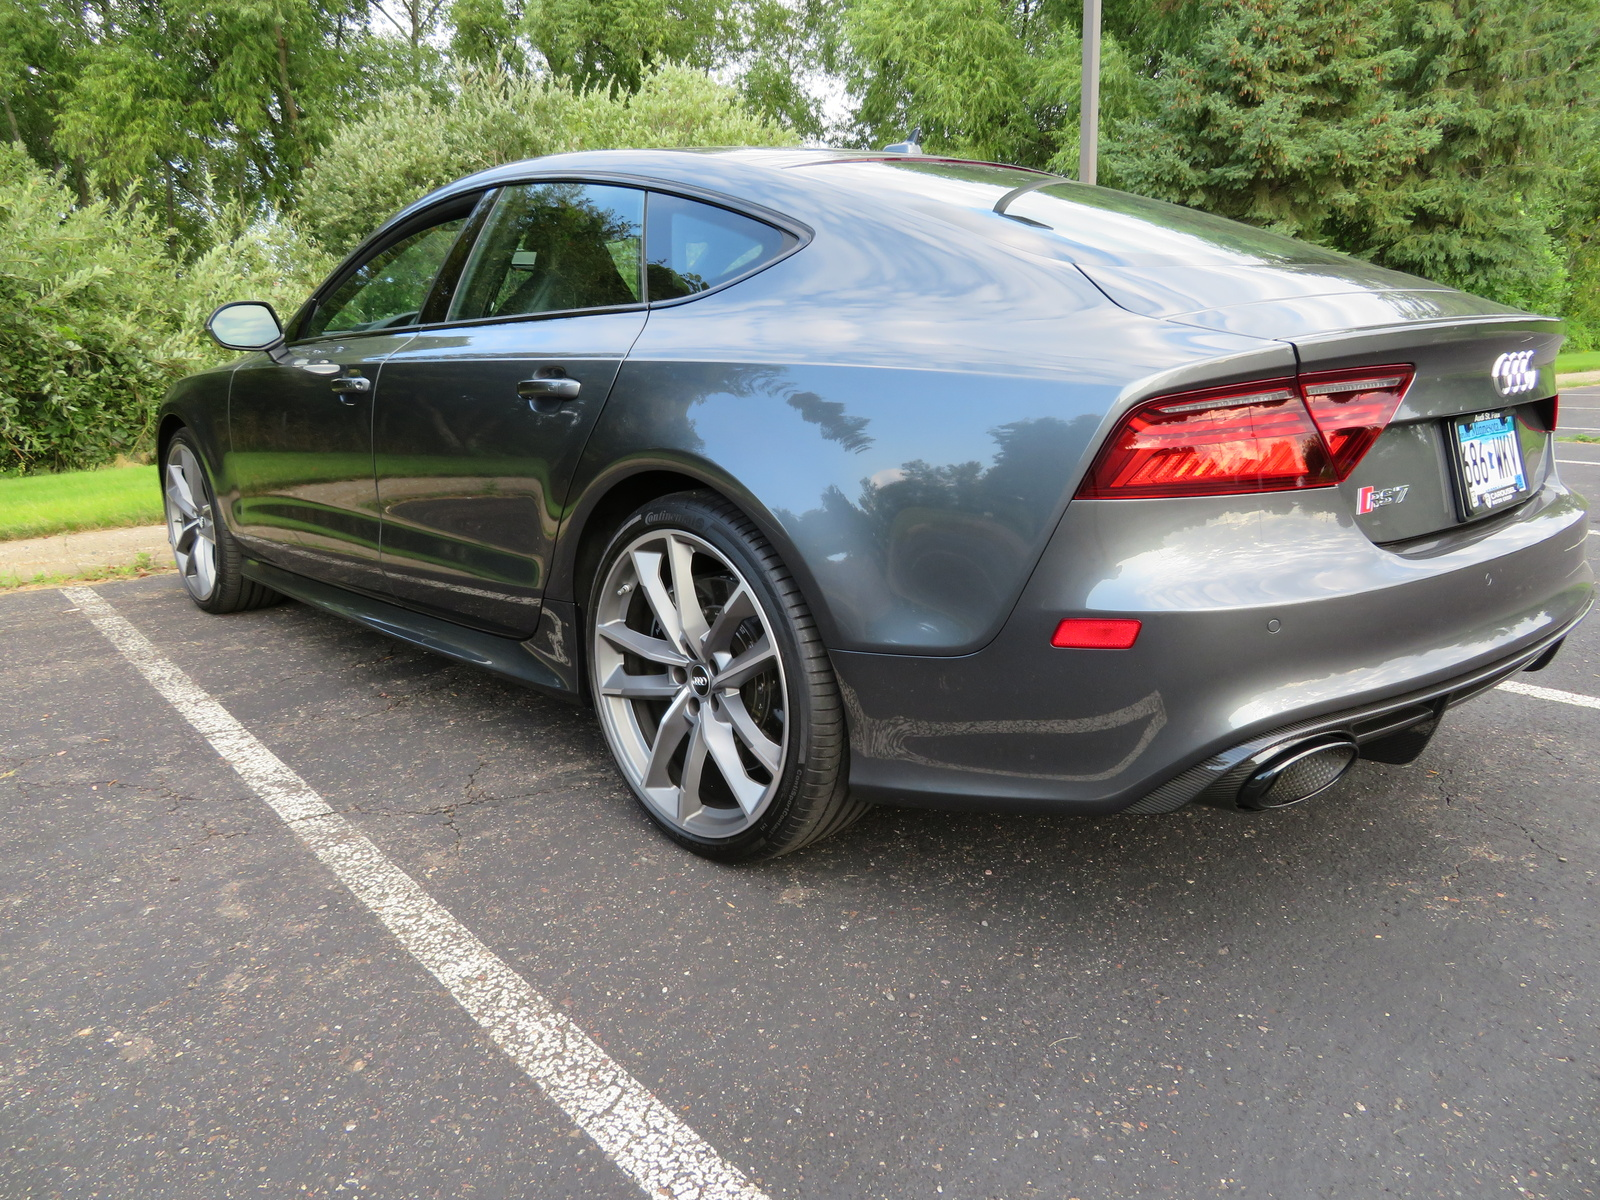 Picture of 2017 Audi RS 7 4.0T quattro Performance